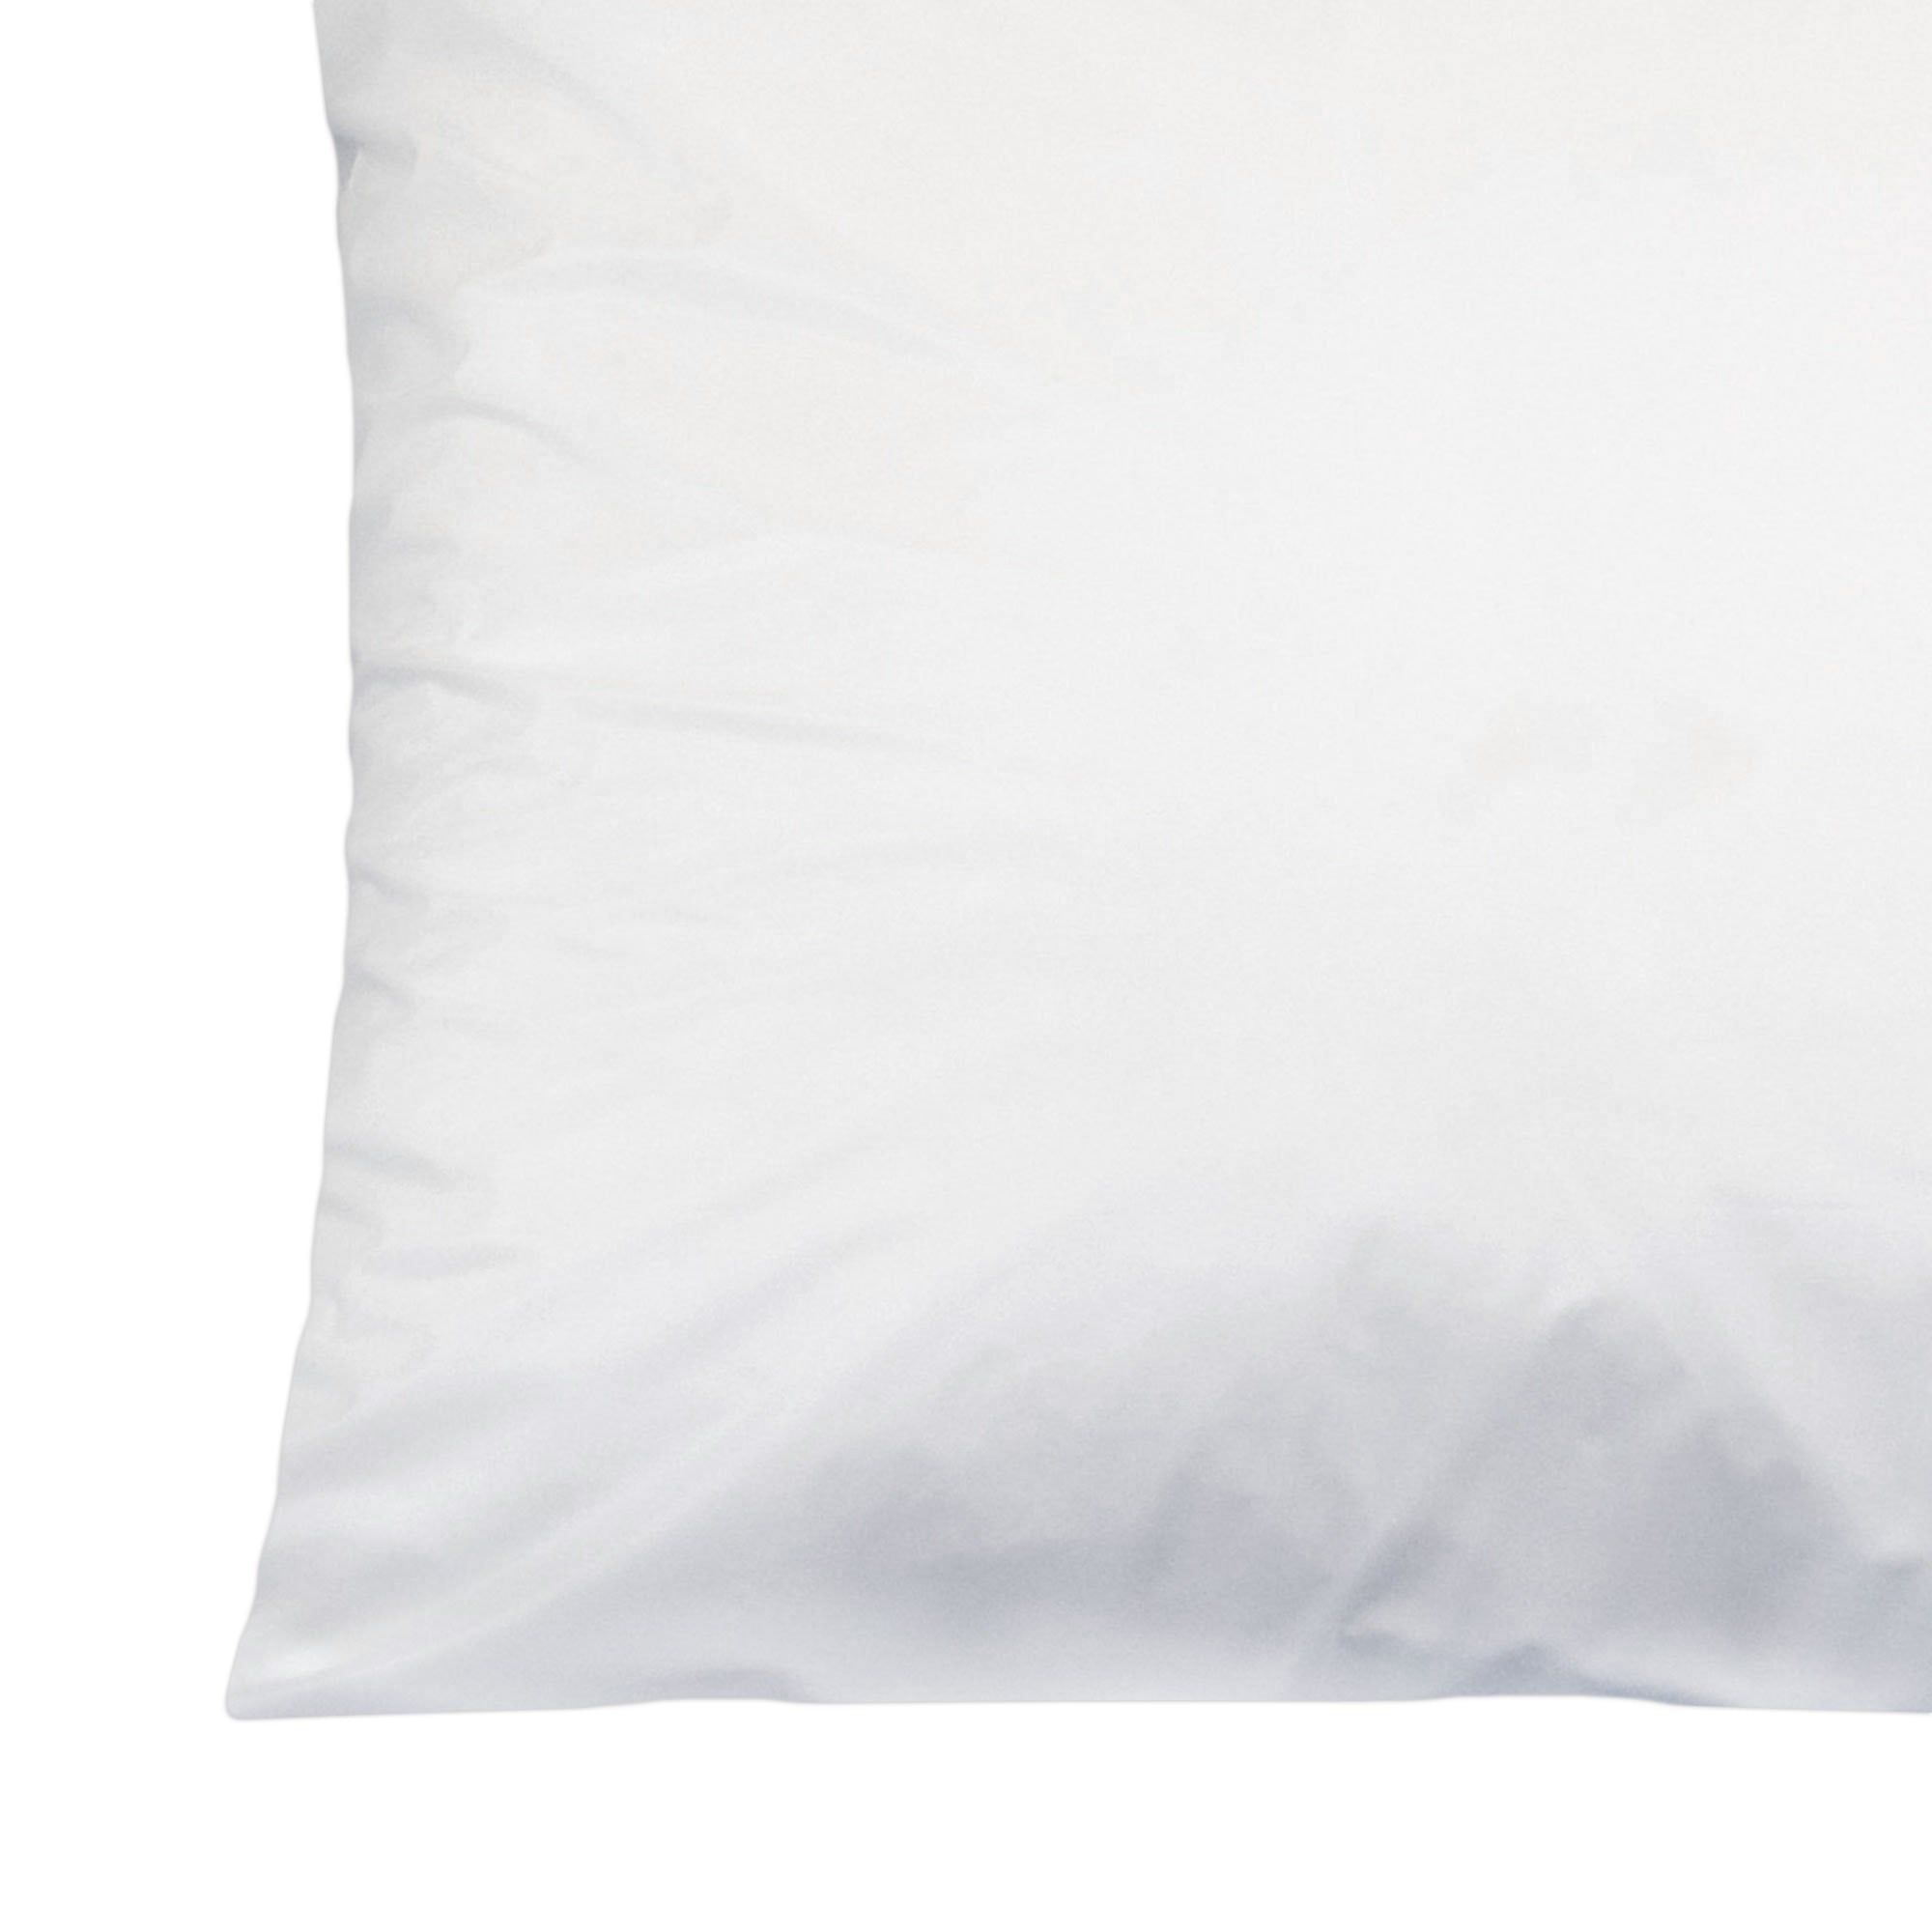 Vinyl Zippered Waterproof Pillow Cover